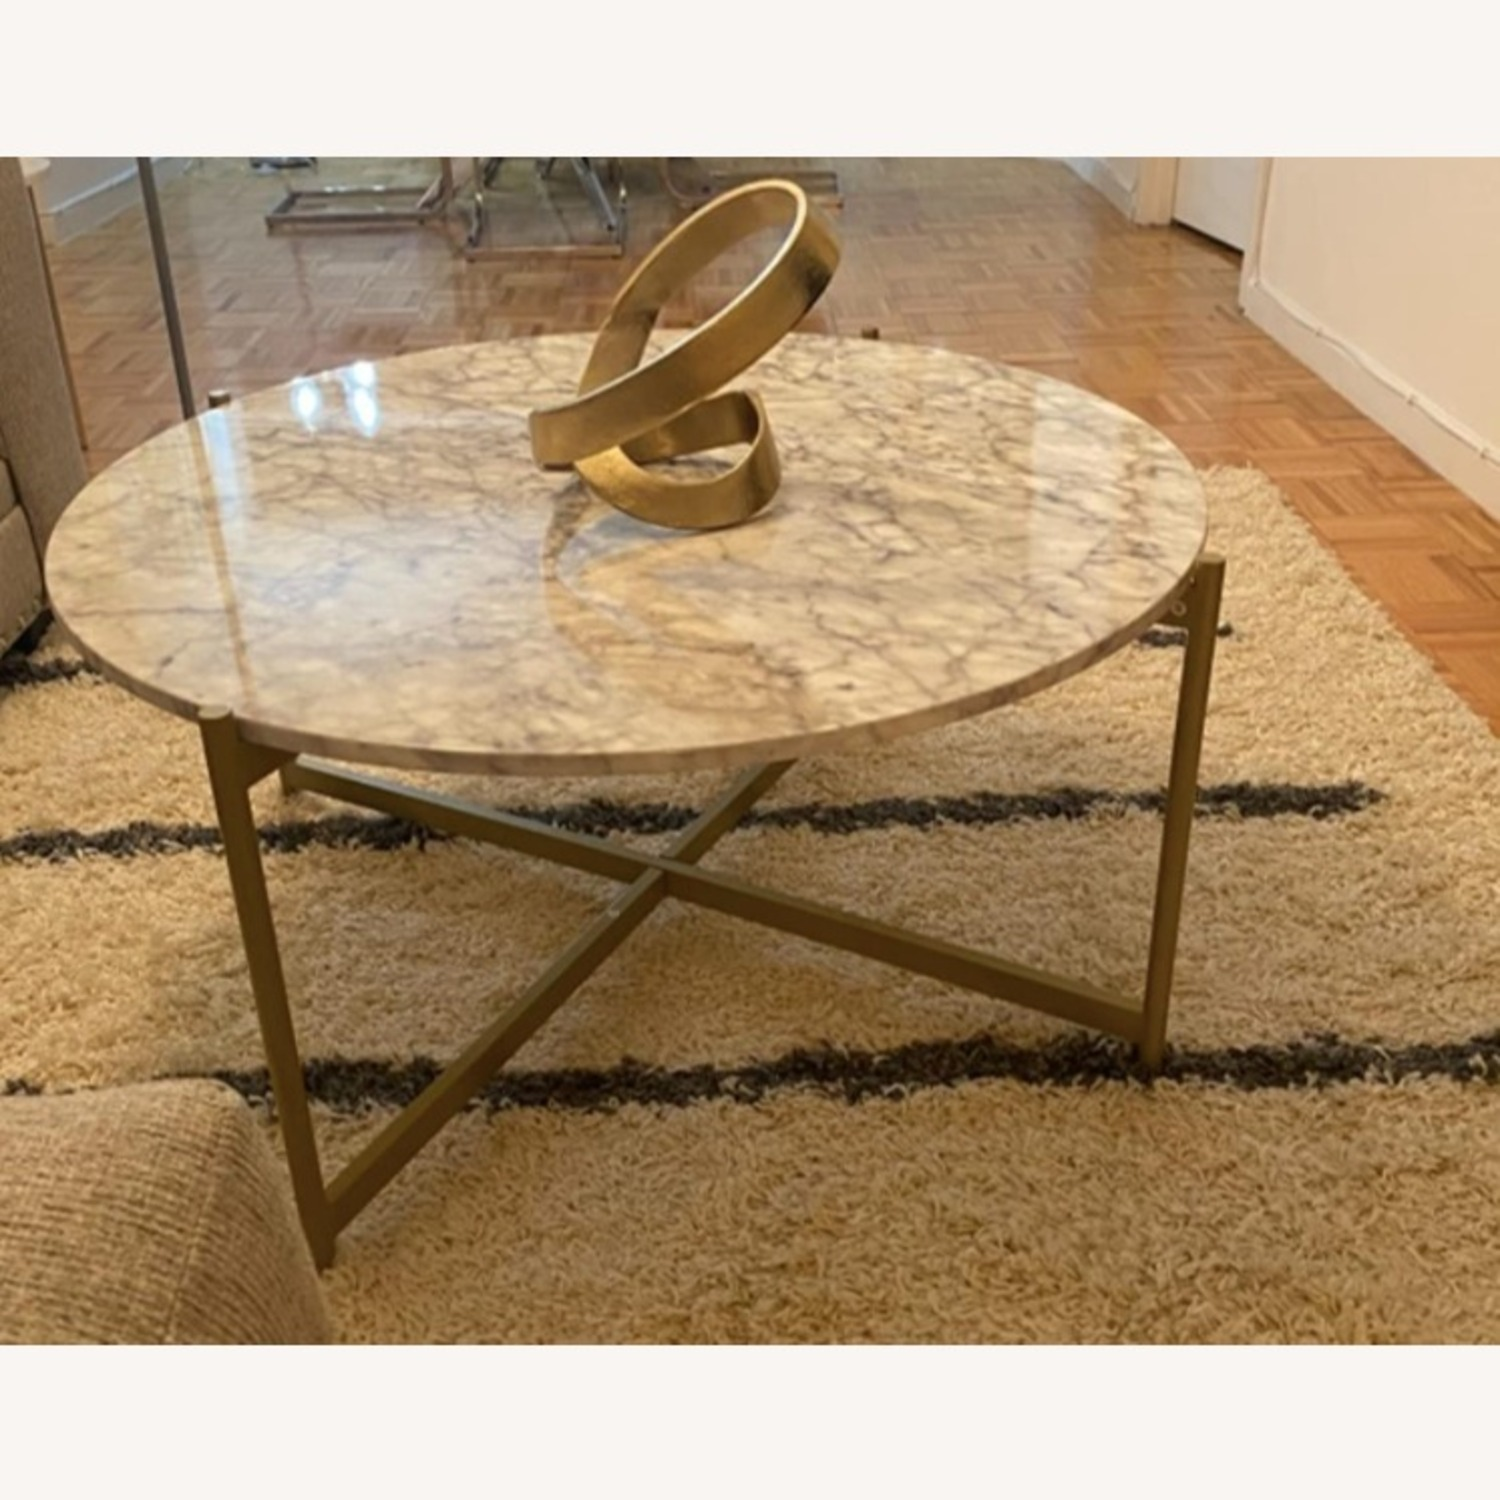 Mid Century Modern Marble Coffee Table Gold Frame - image-3